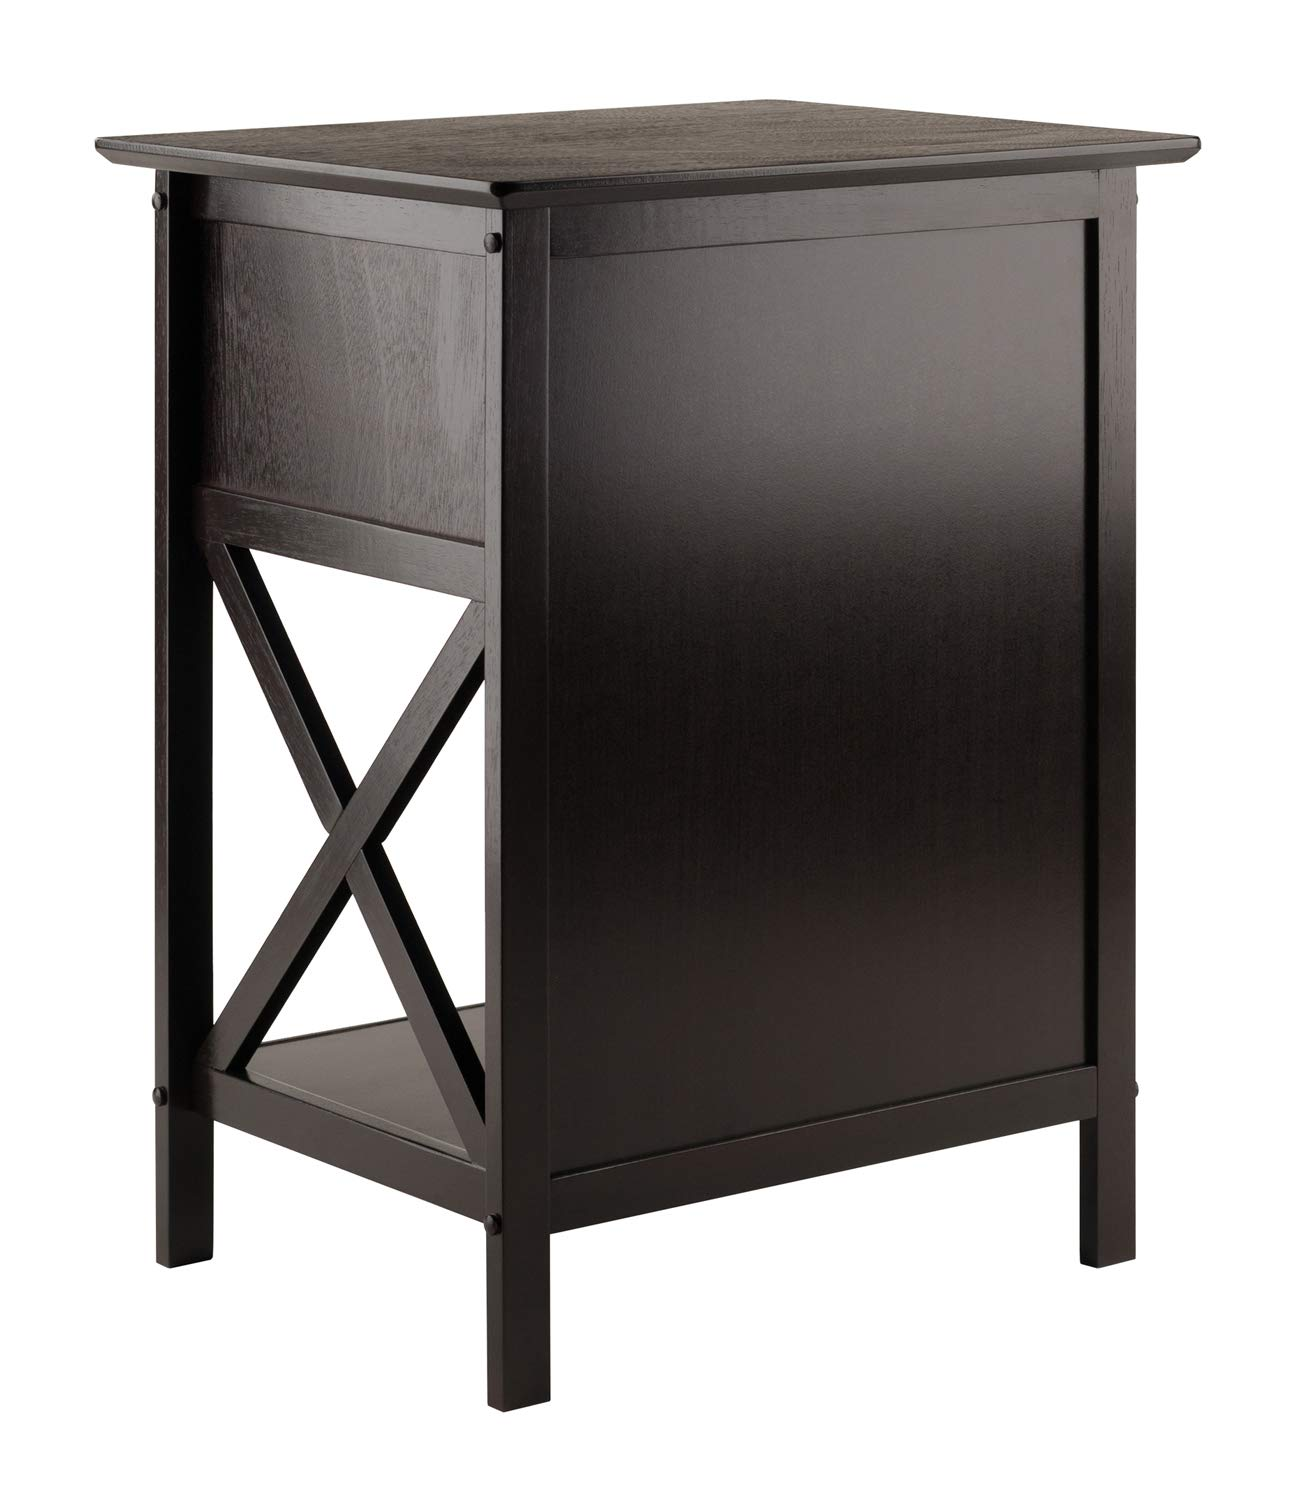 winsome wood xylia accent table coffee kitchen eugene white dining small narrow side bistro curry company sided accents versailles furniture garden light cherry end tables ideas